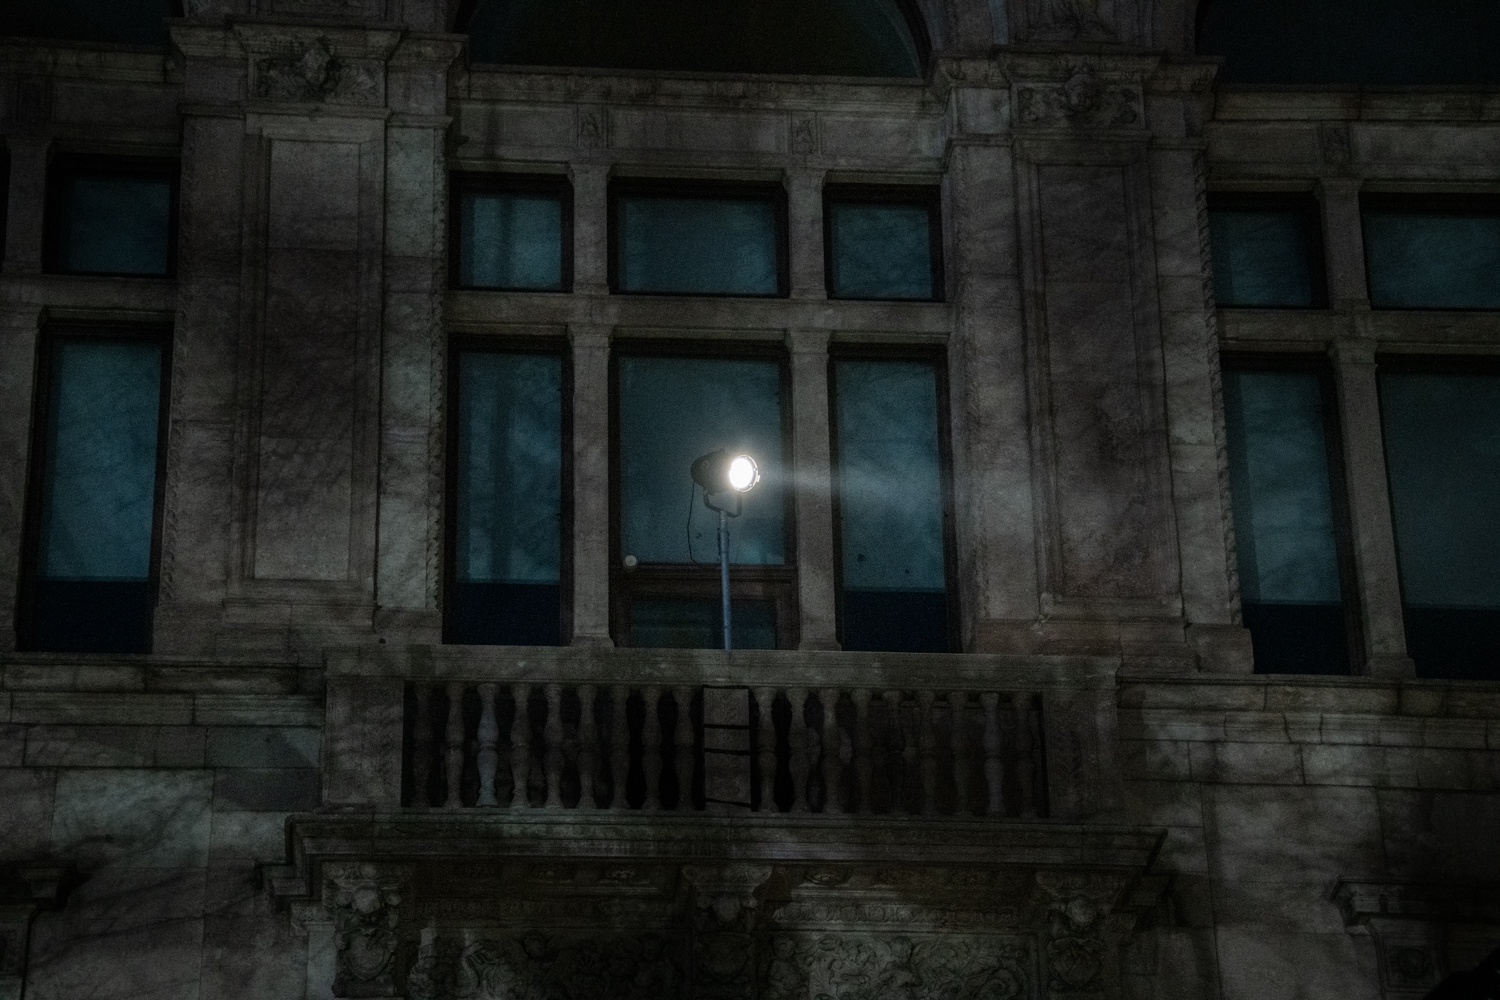 A lamp on the facade of the art academy in Stockholm. The picture is taken when it is dark and the lamp is shining.